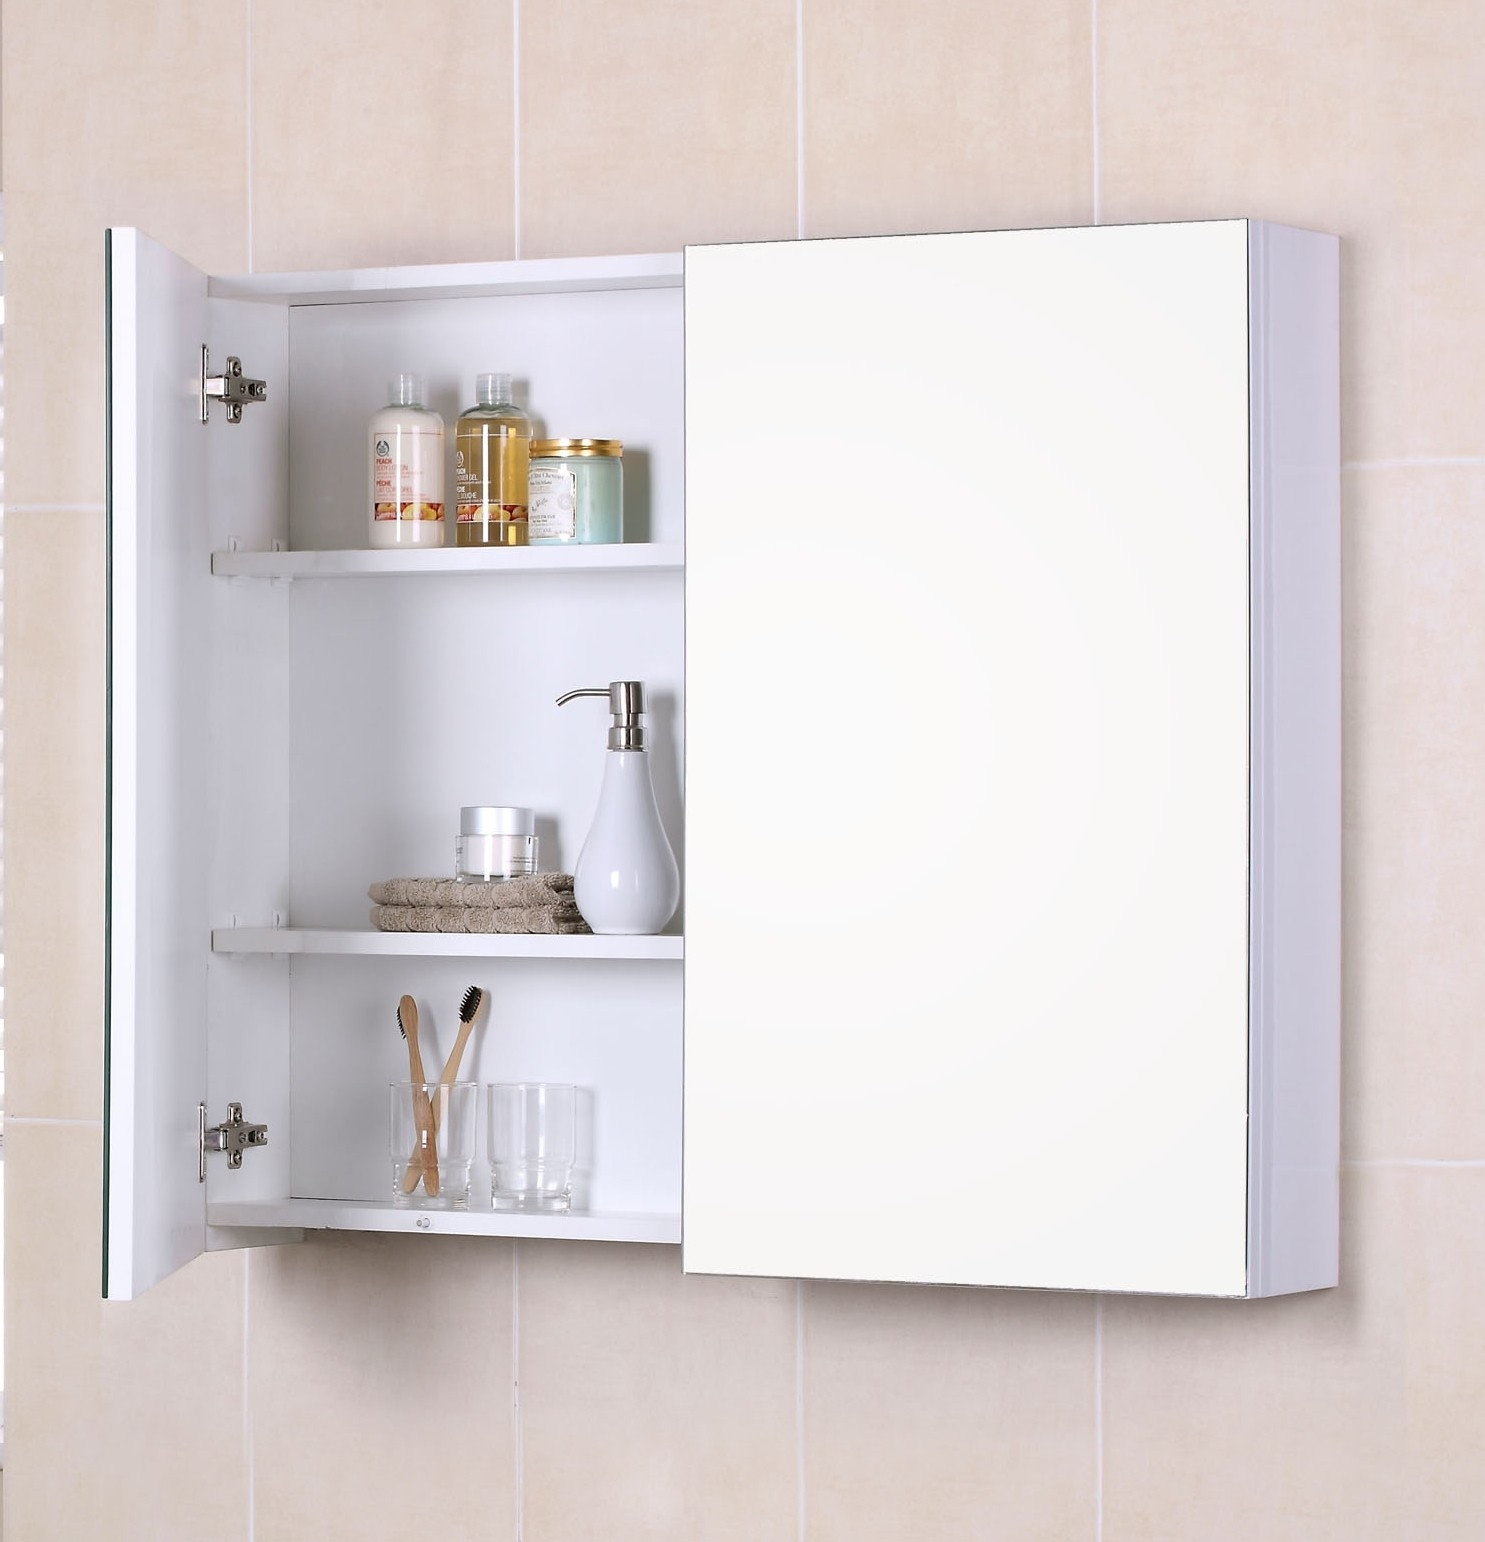 Permalink to Bathroom Wall Cabinet With Mirrored Door And Shelves